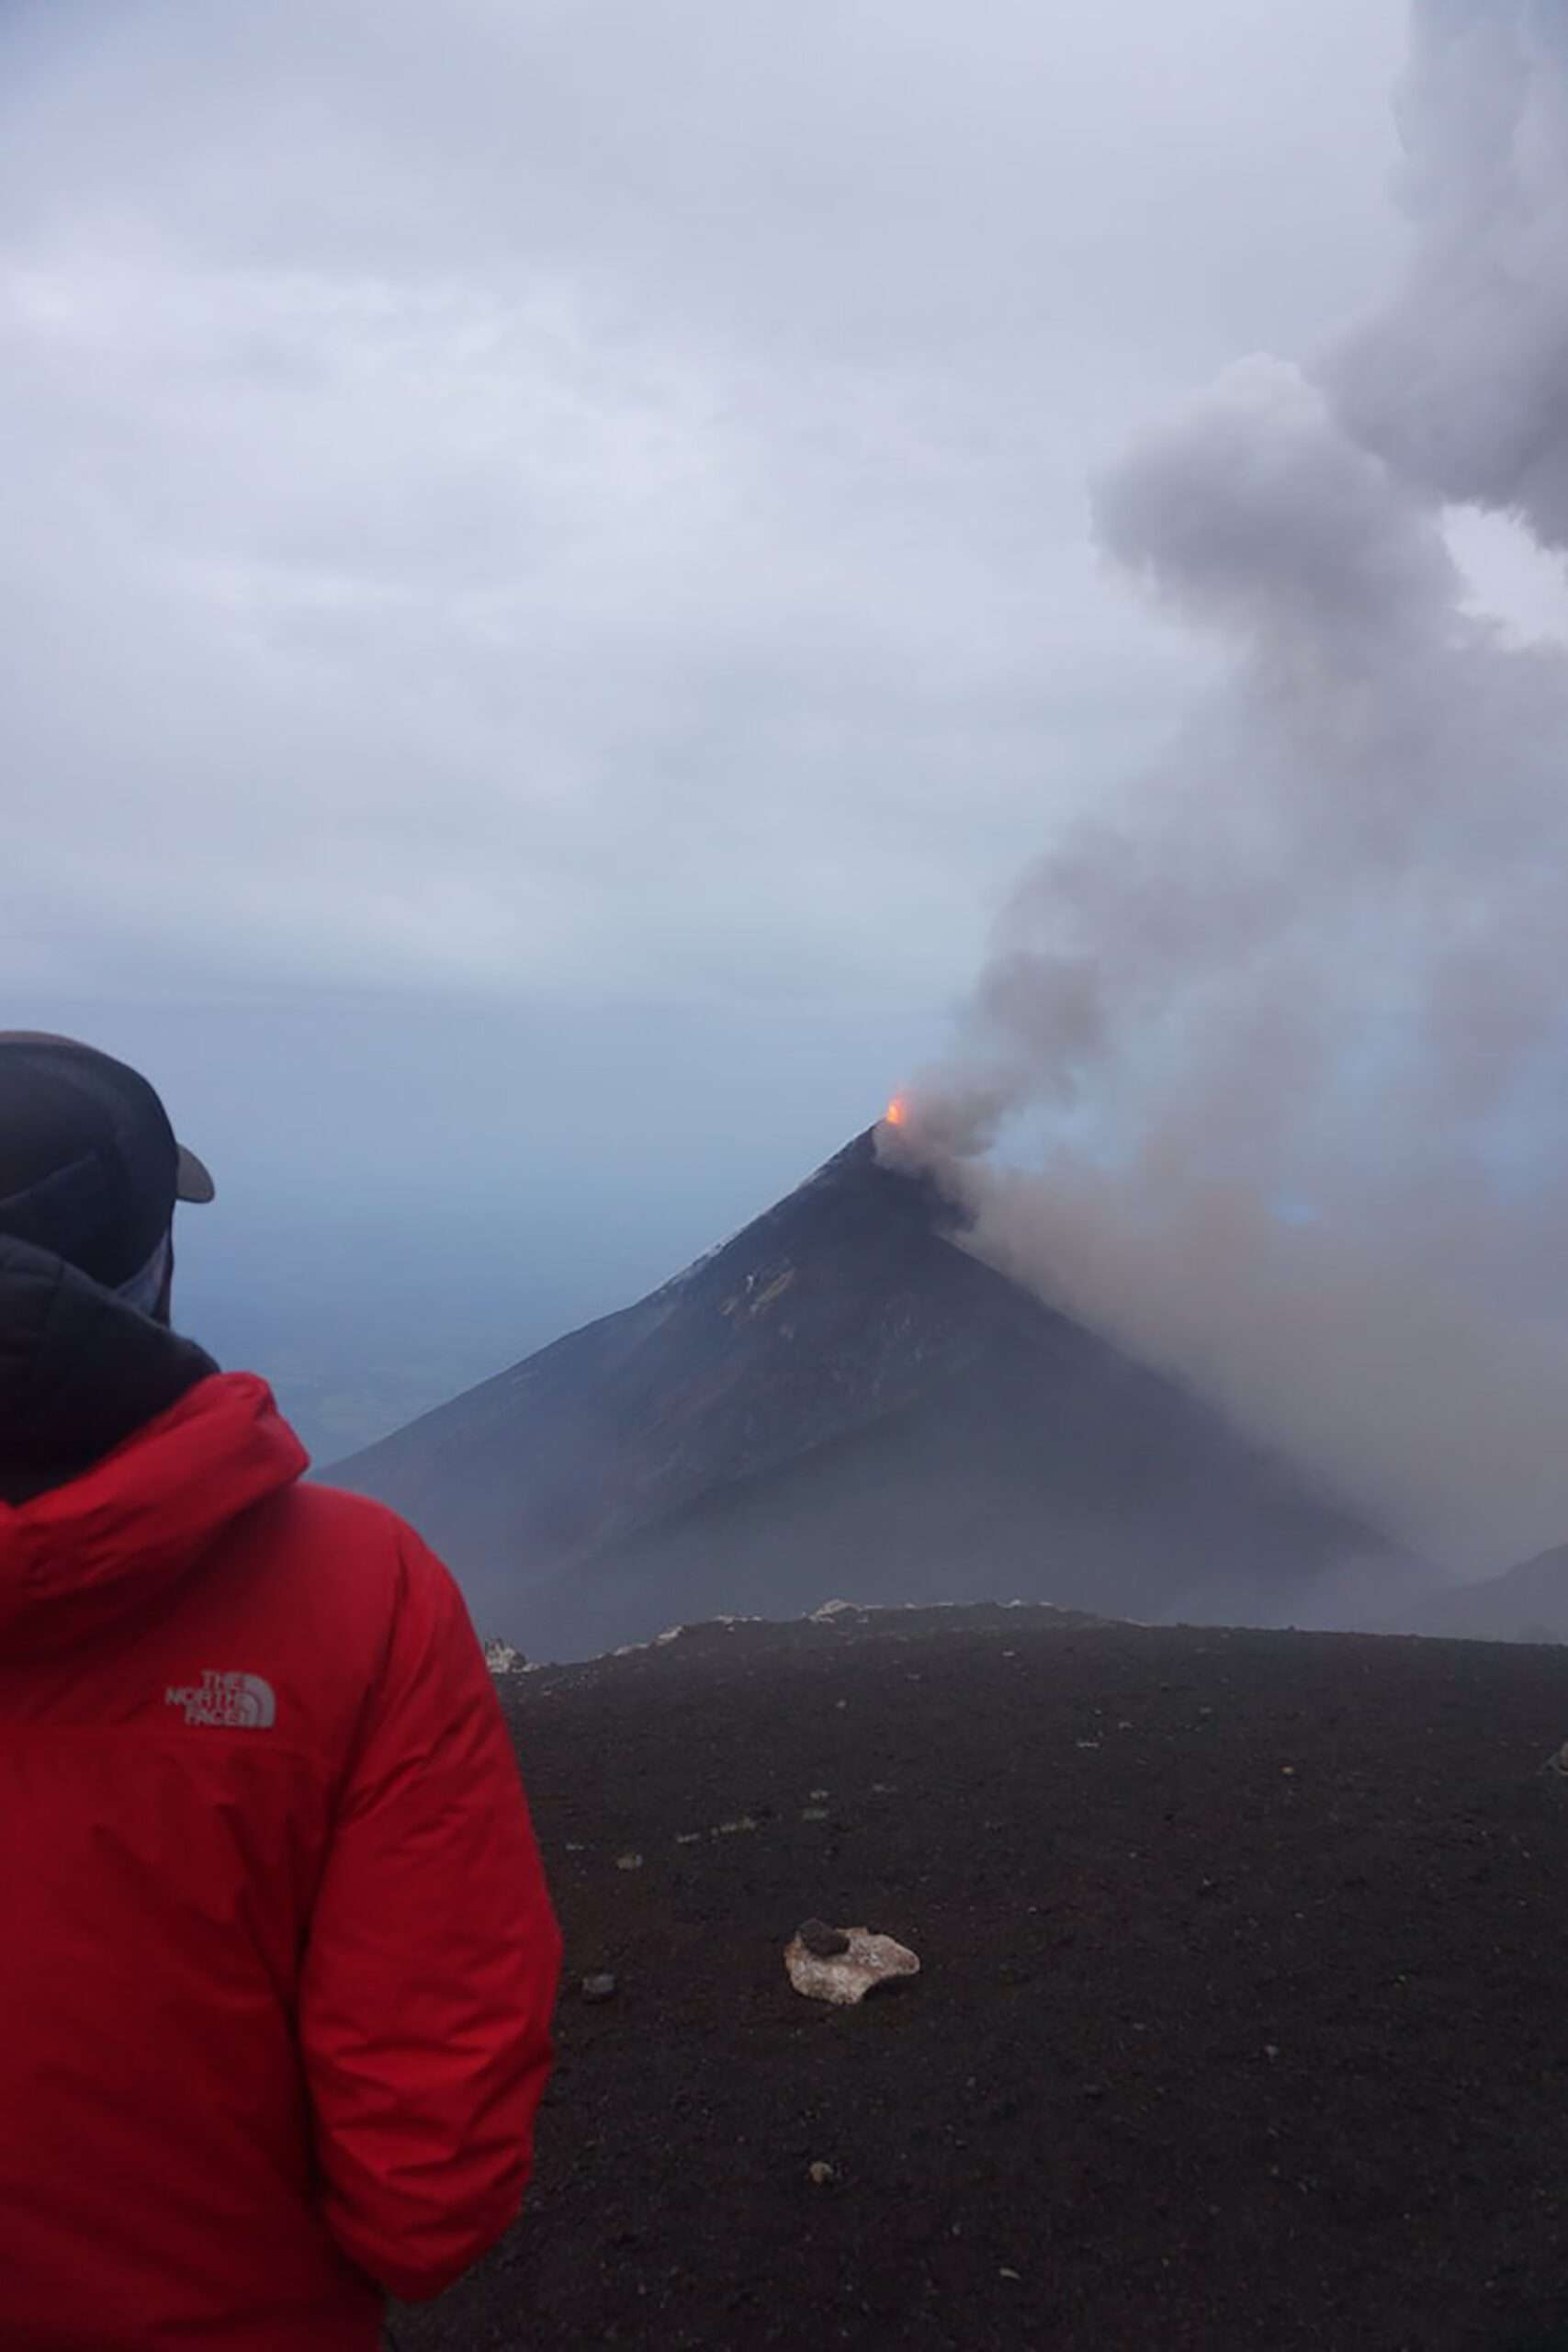 A hiker watches eruption of Fuego Volcano in the distance